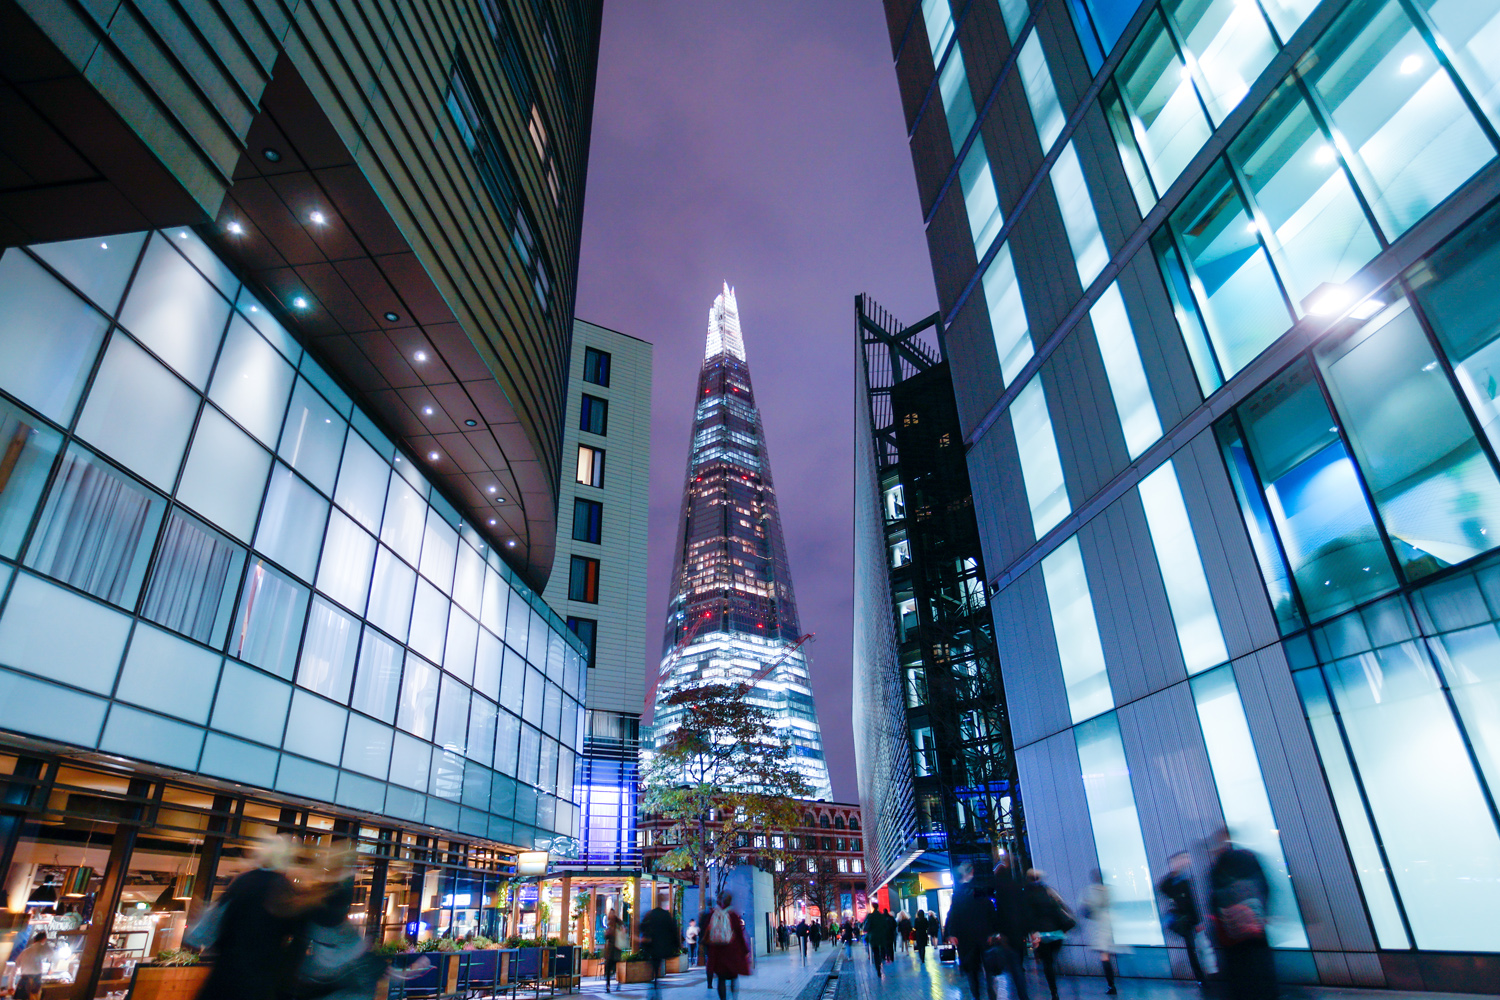 London Commercial Property Market Overview – March 2020